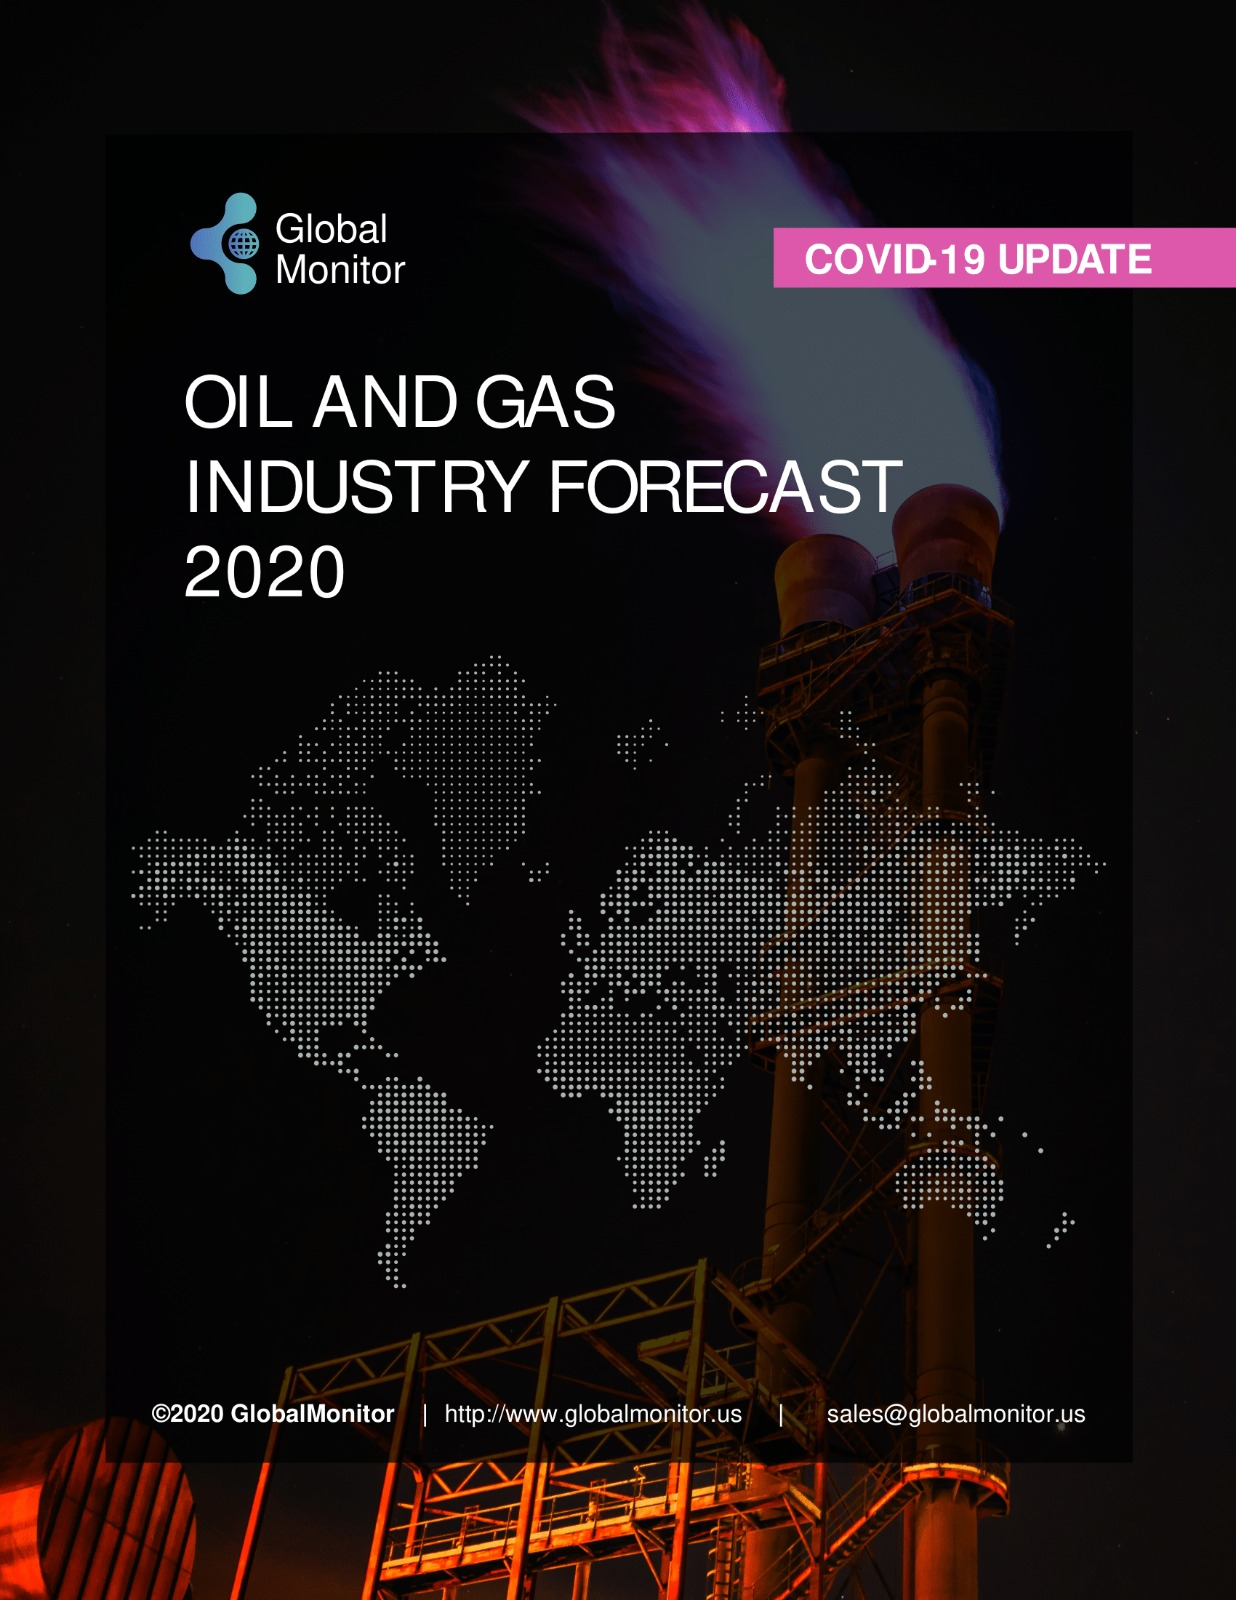 Israel Oil and Gas Market Report with COVID-19 impact Analysis  (2020-2025)